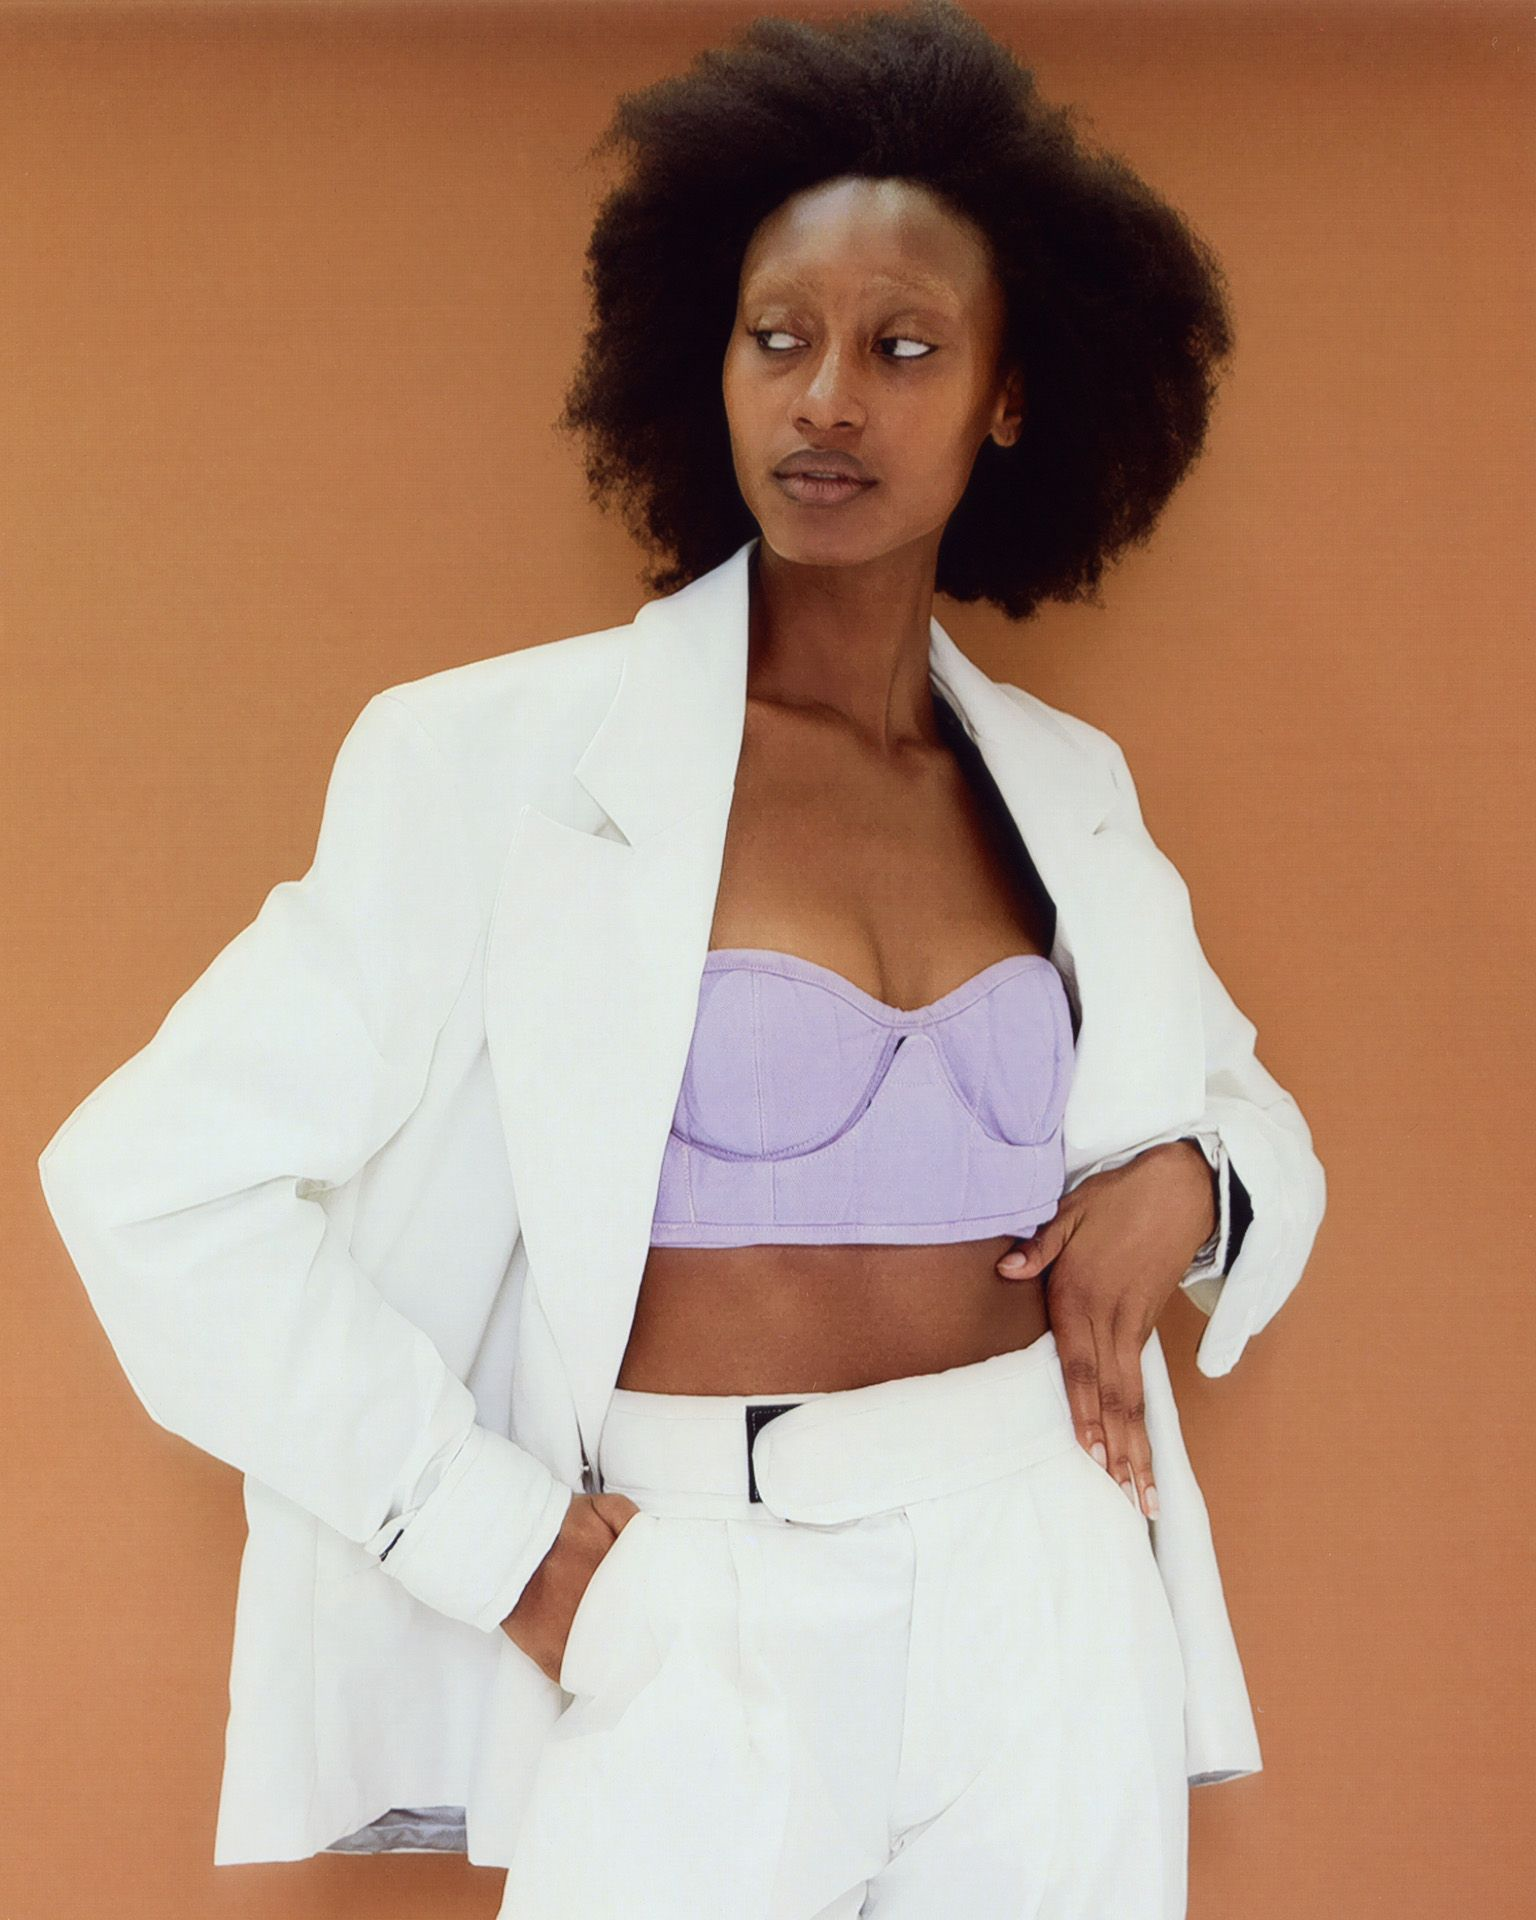 black female model with afro by Oumayma B Tanfous for Document Journal Barragannnn casting summer spring 2020